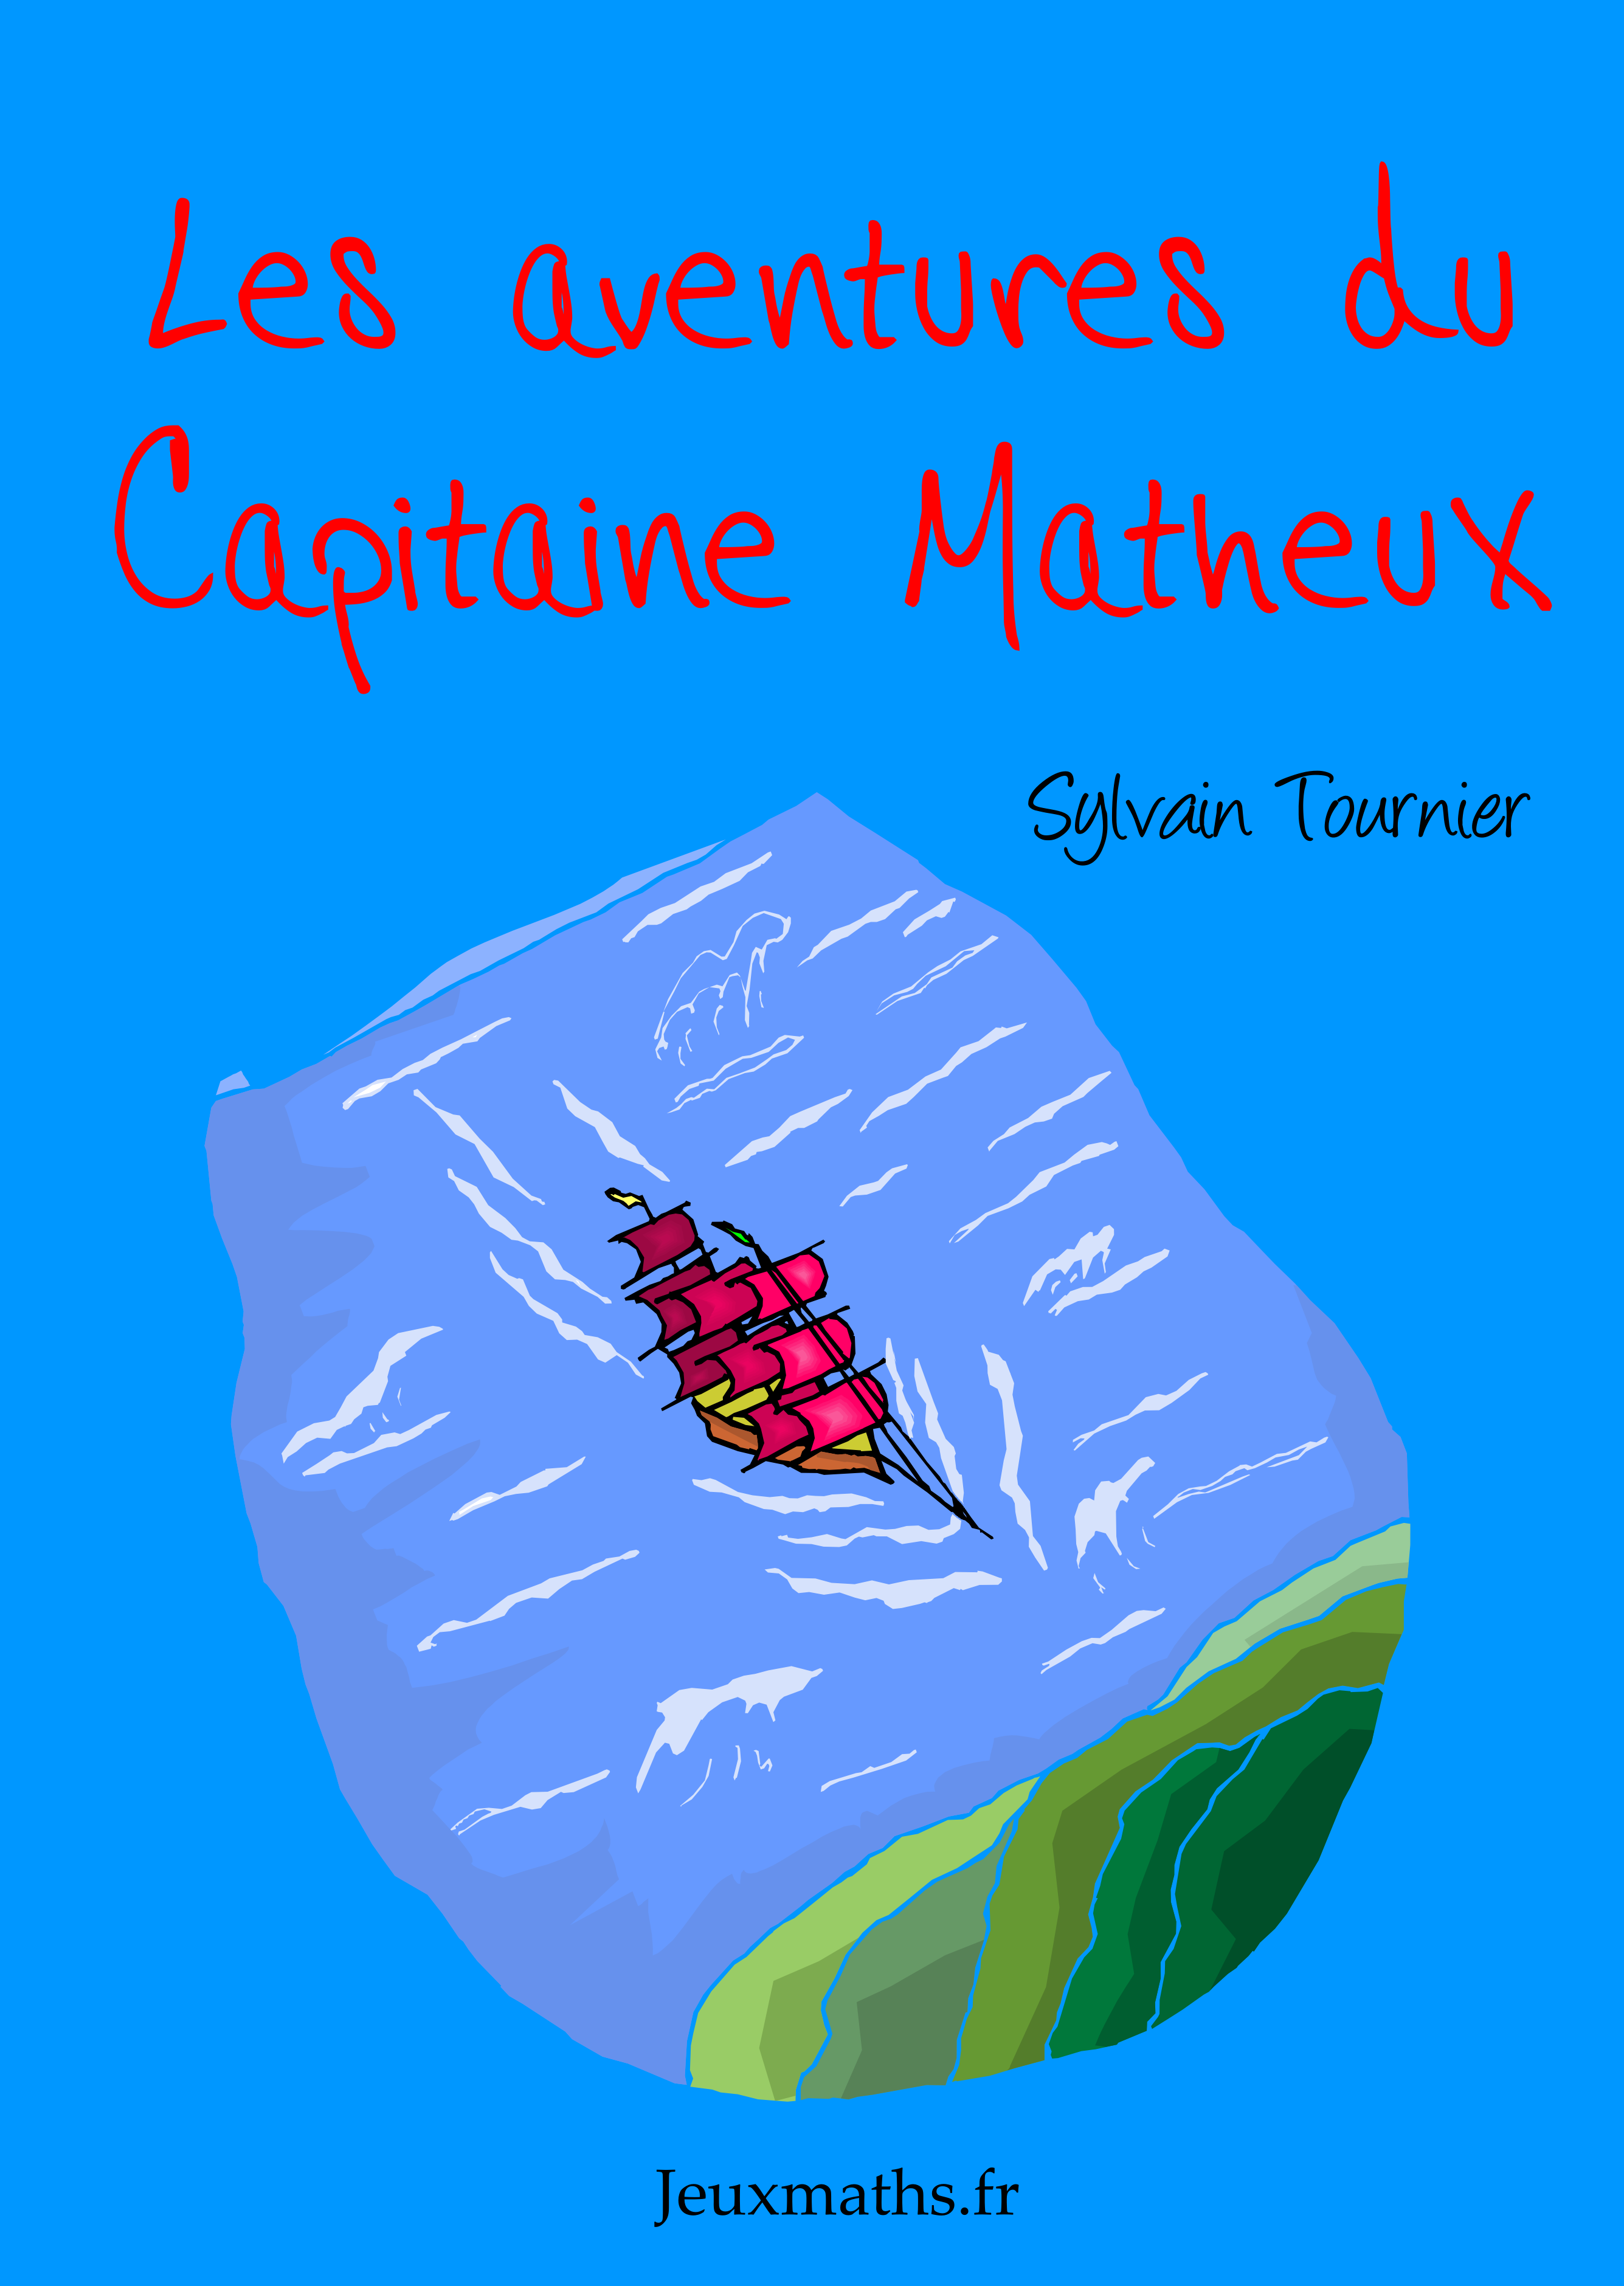 capitaine matheux